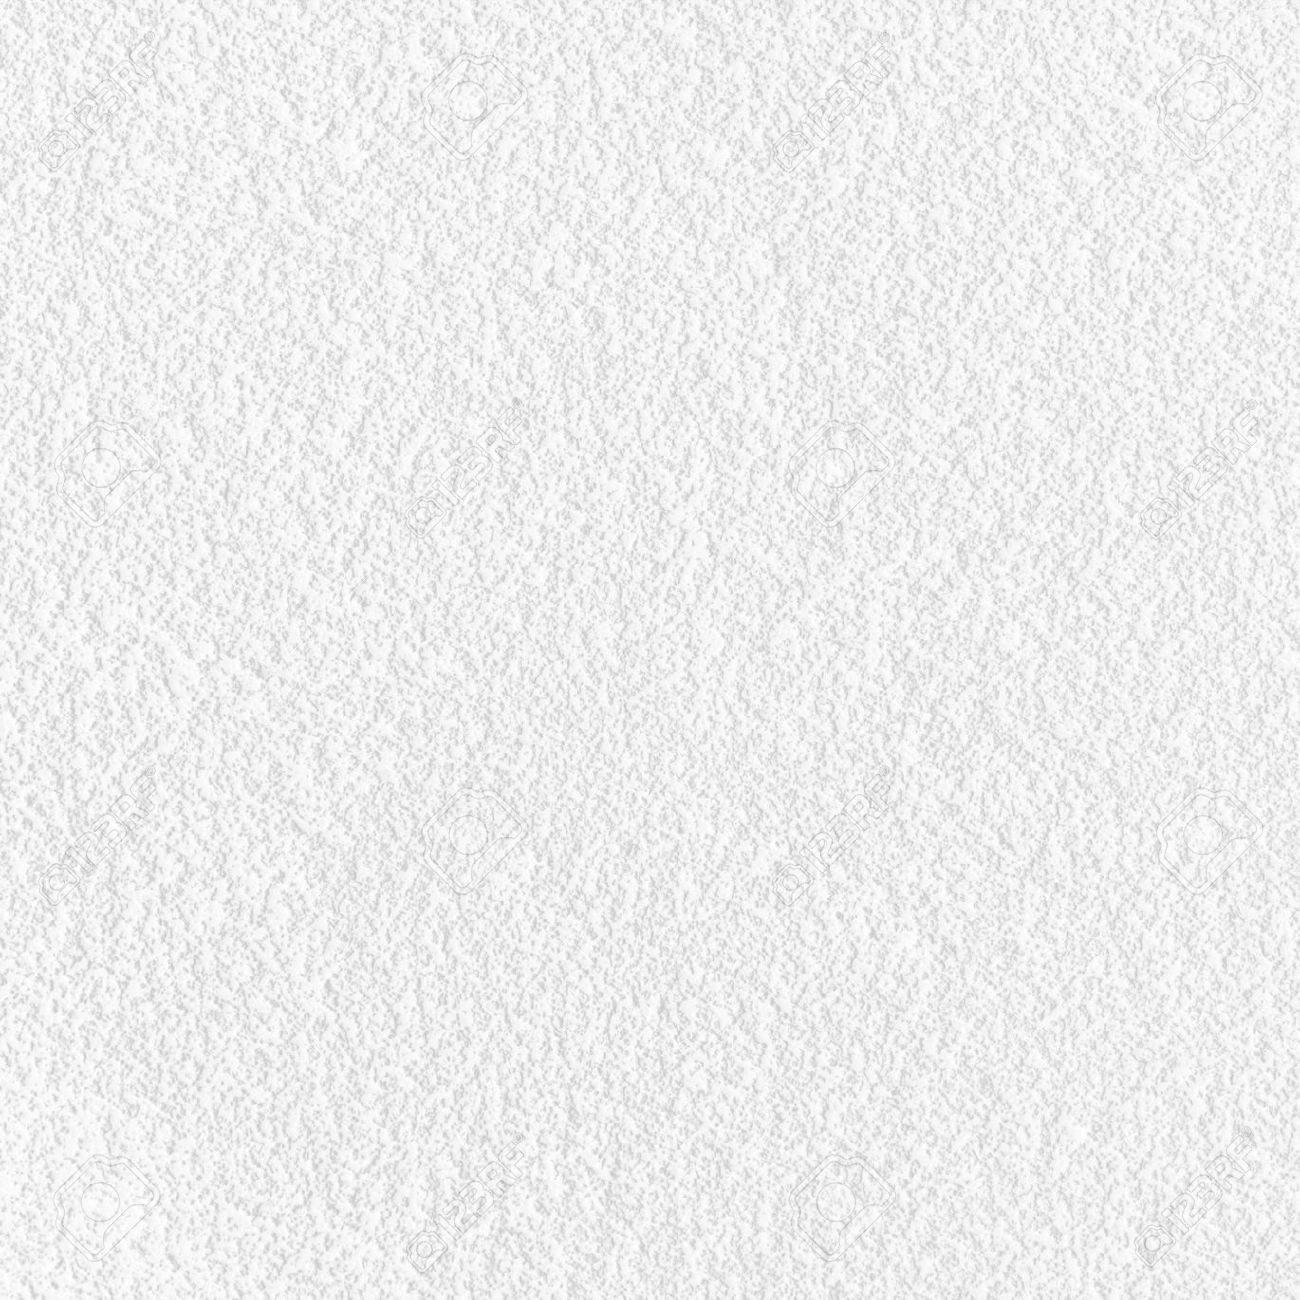 White Wall Paper Texture Background Stock Photo Picture And Royalty